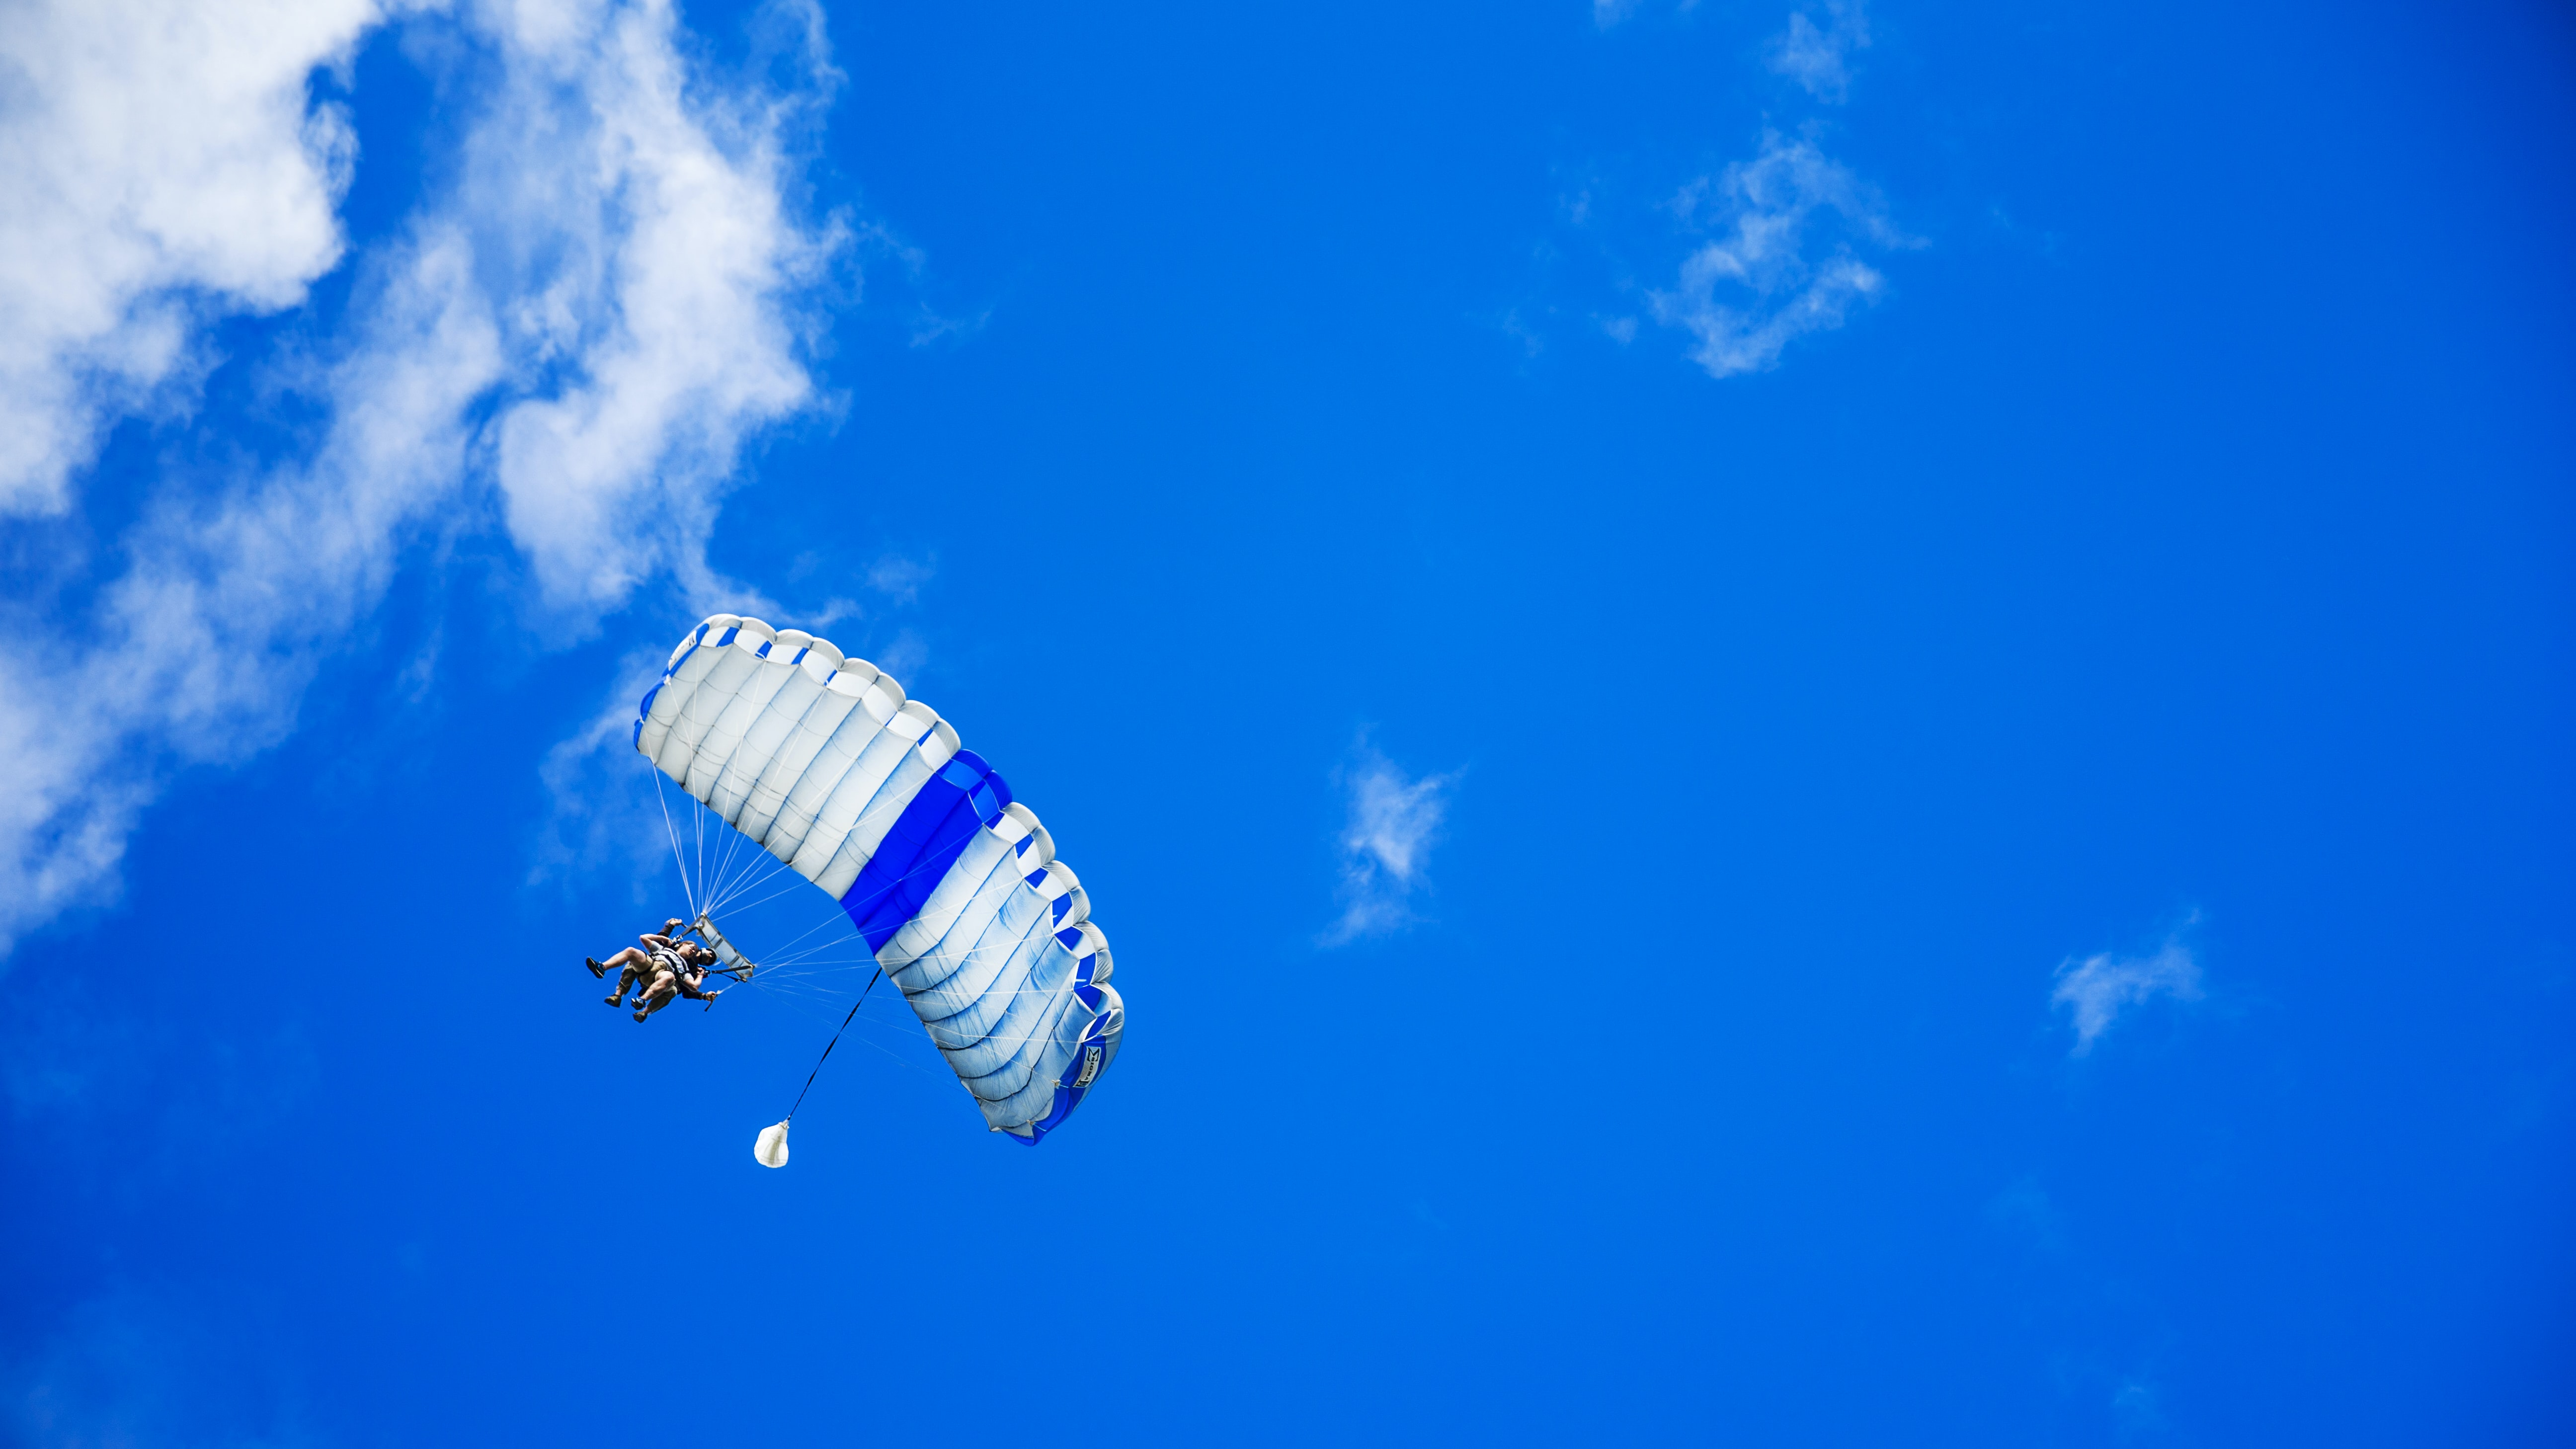 People tandem paragliding across a blue sky with soft clouds